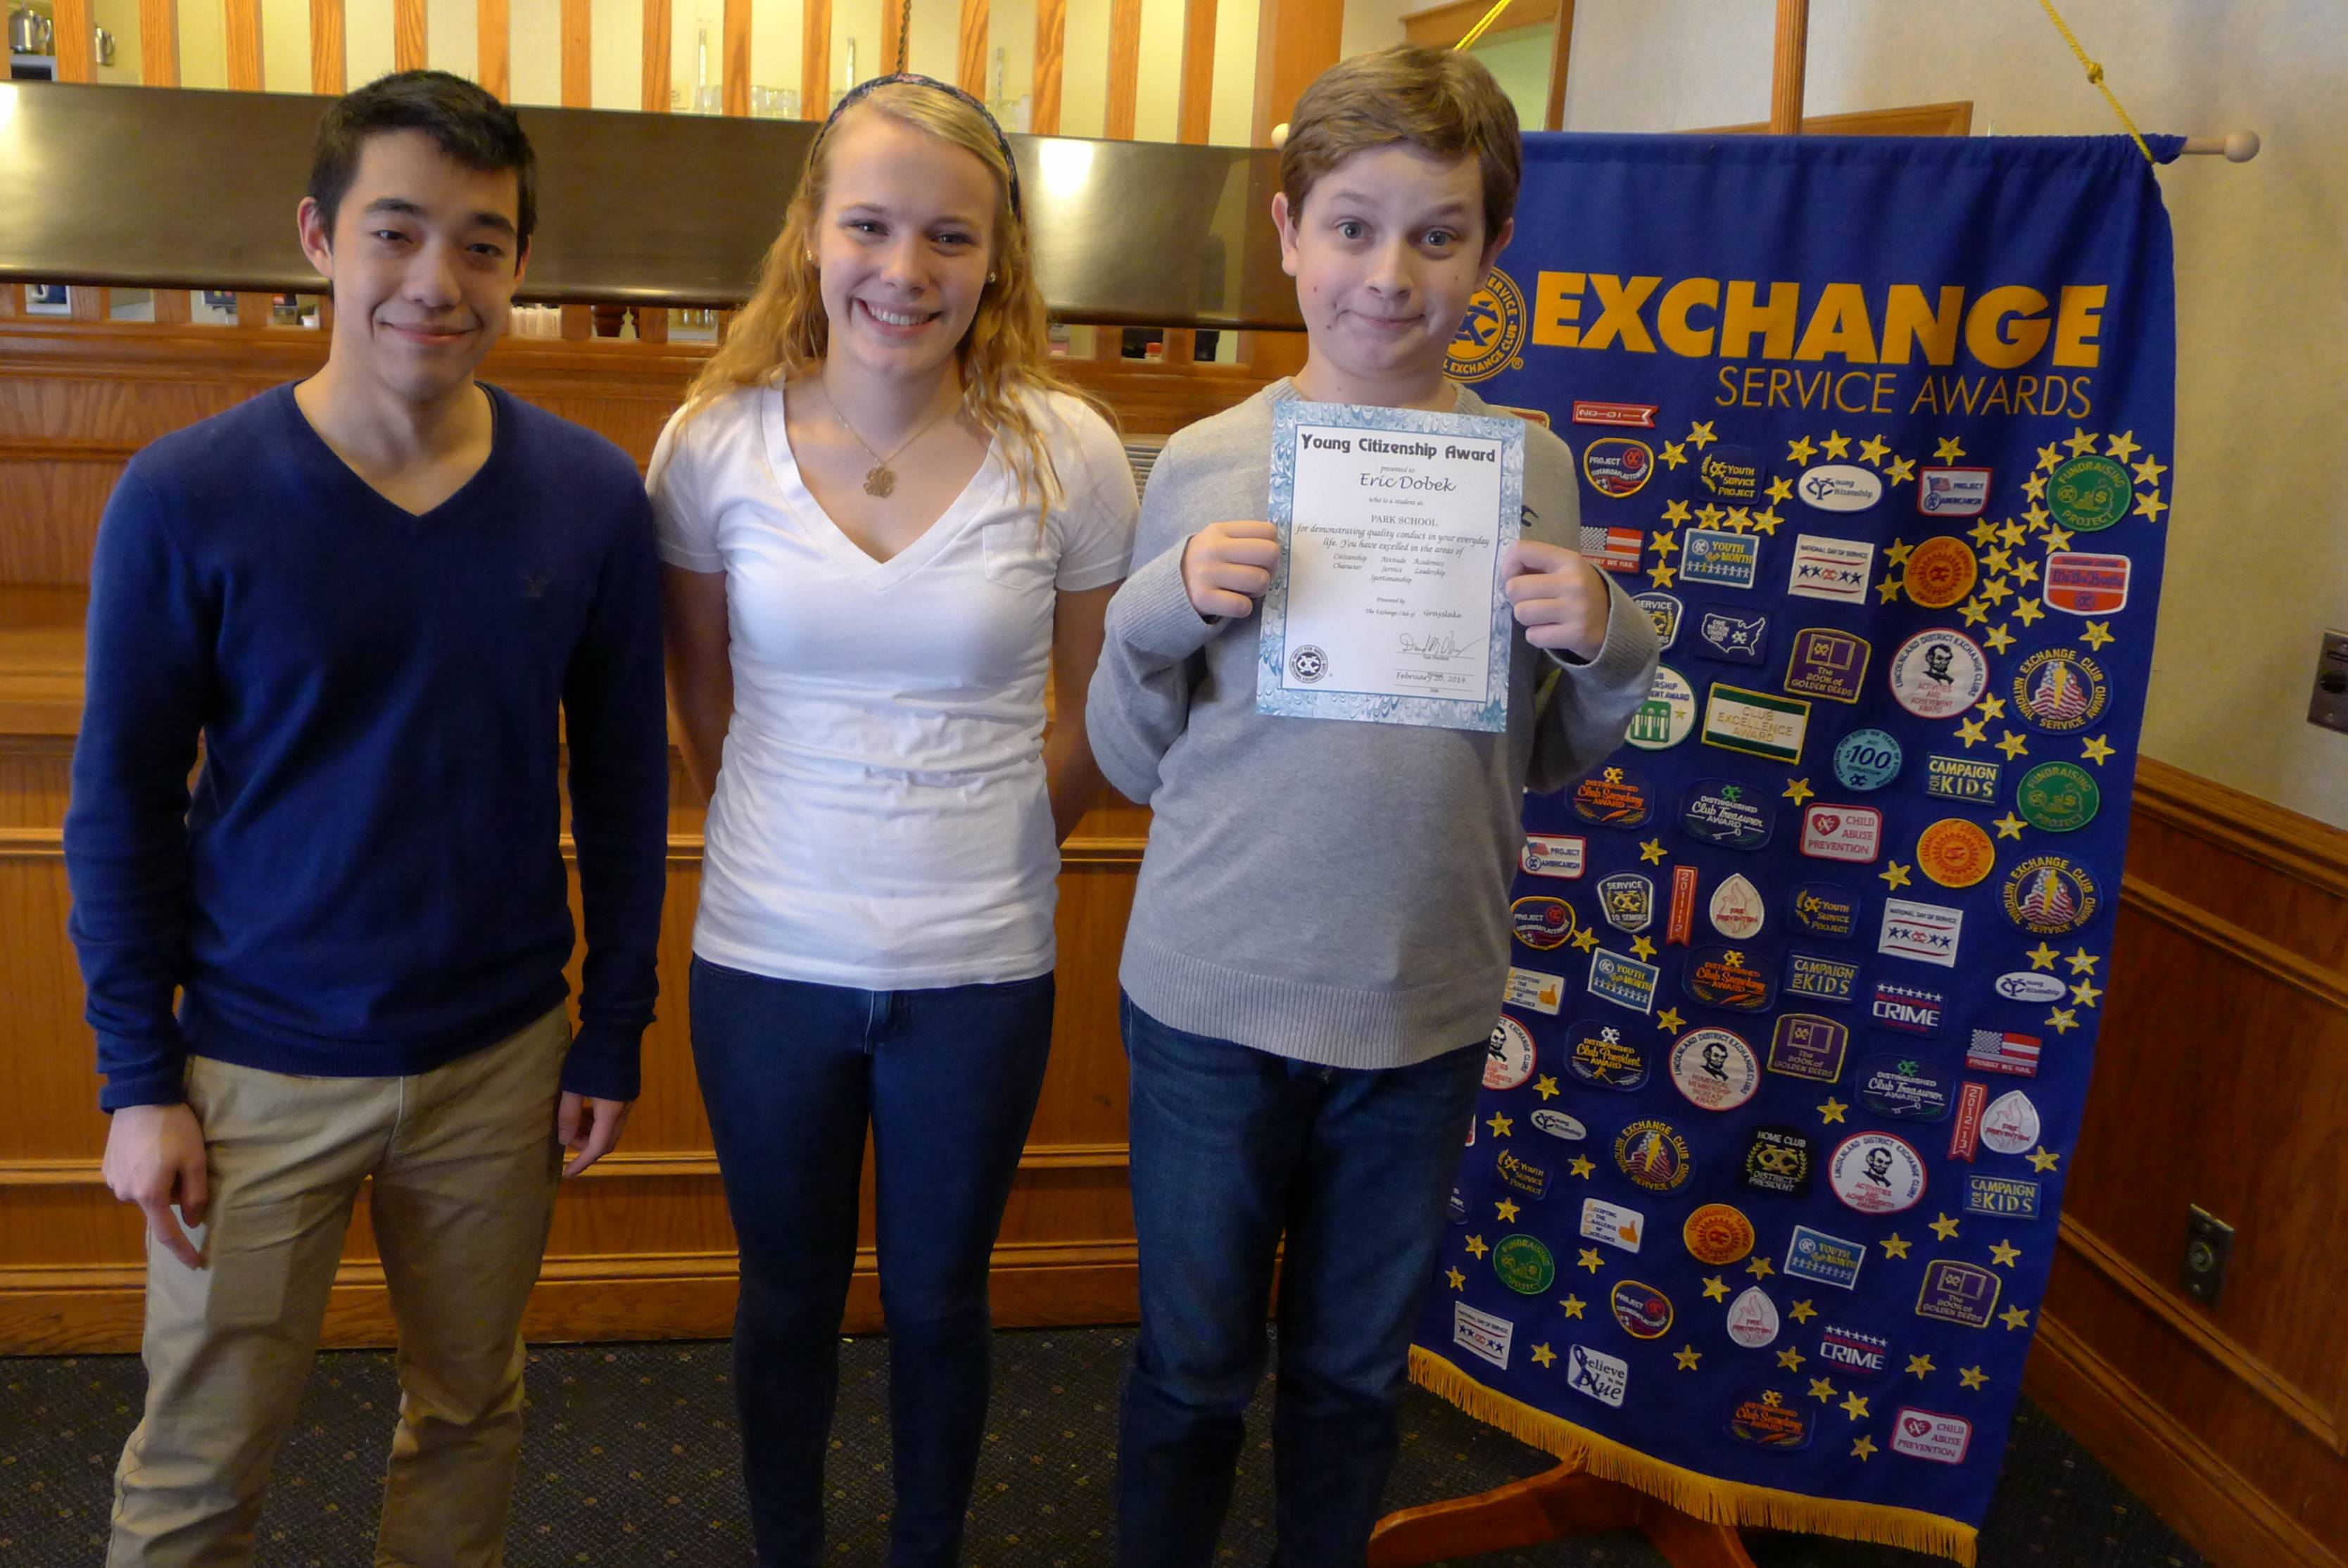 The Exchange Club of Grayslake's February Youth of the Month award winners are Albert Yang and Shannon Myers. The Young Citizenship Award winner is Eric Dobek.